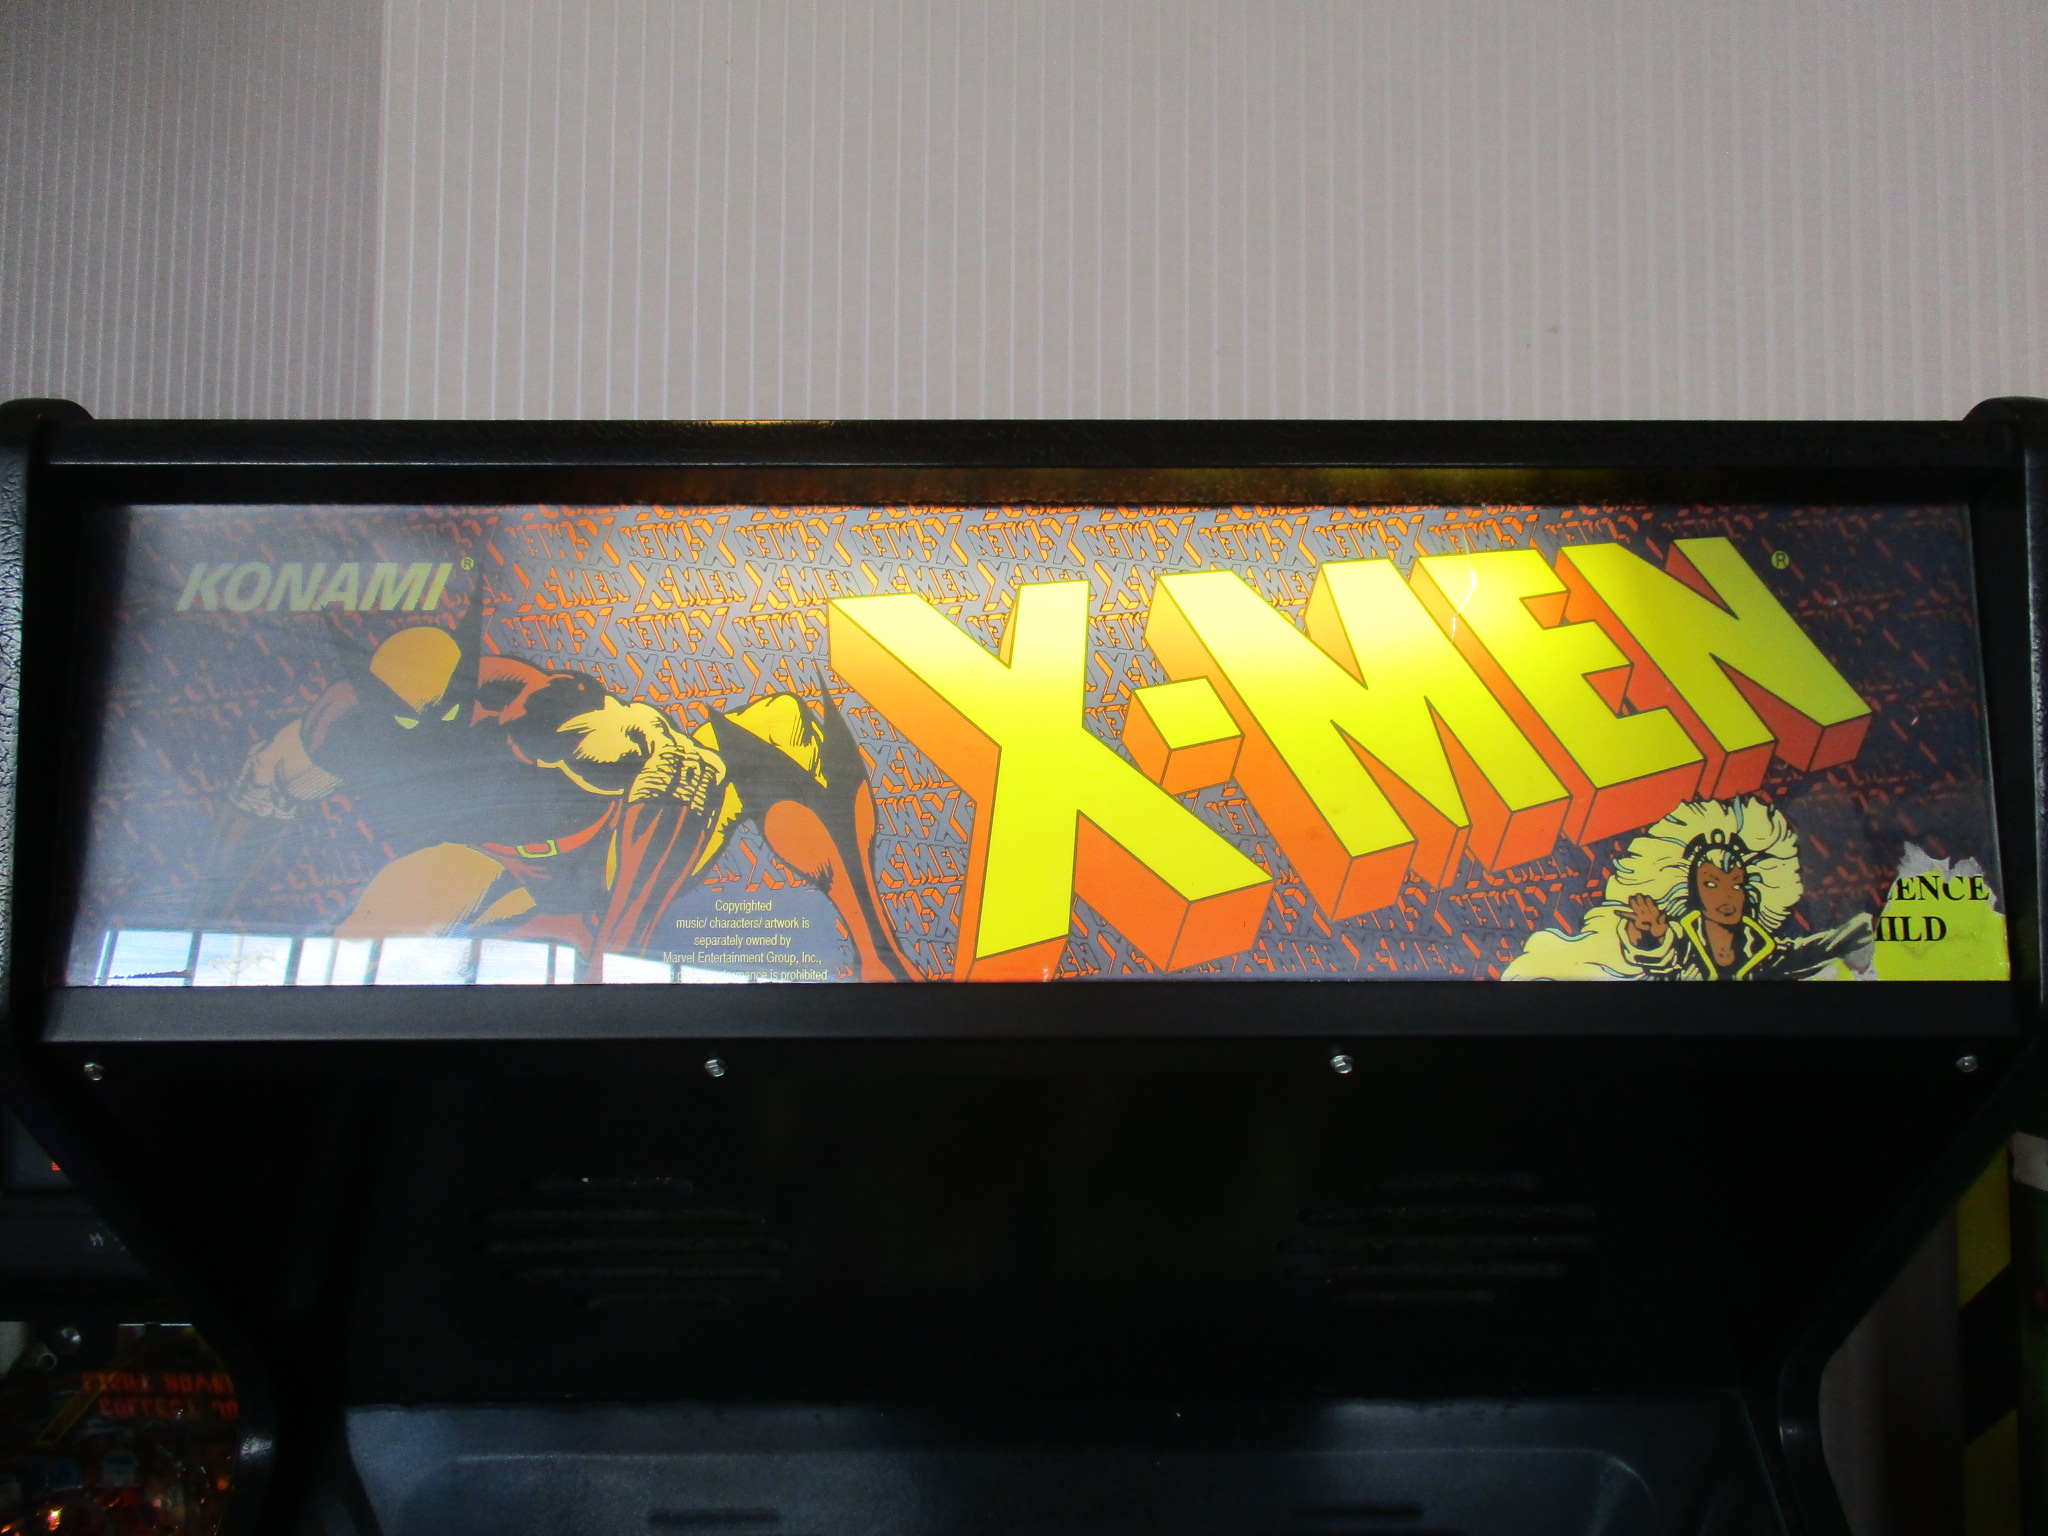 ed1475: X-Men (Arcade) 32 points on 2016-02-12 11:56:28